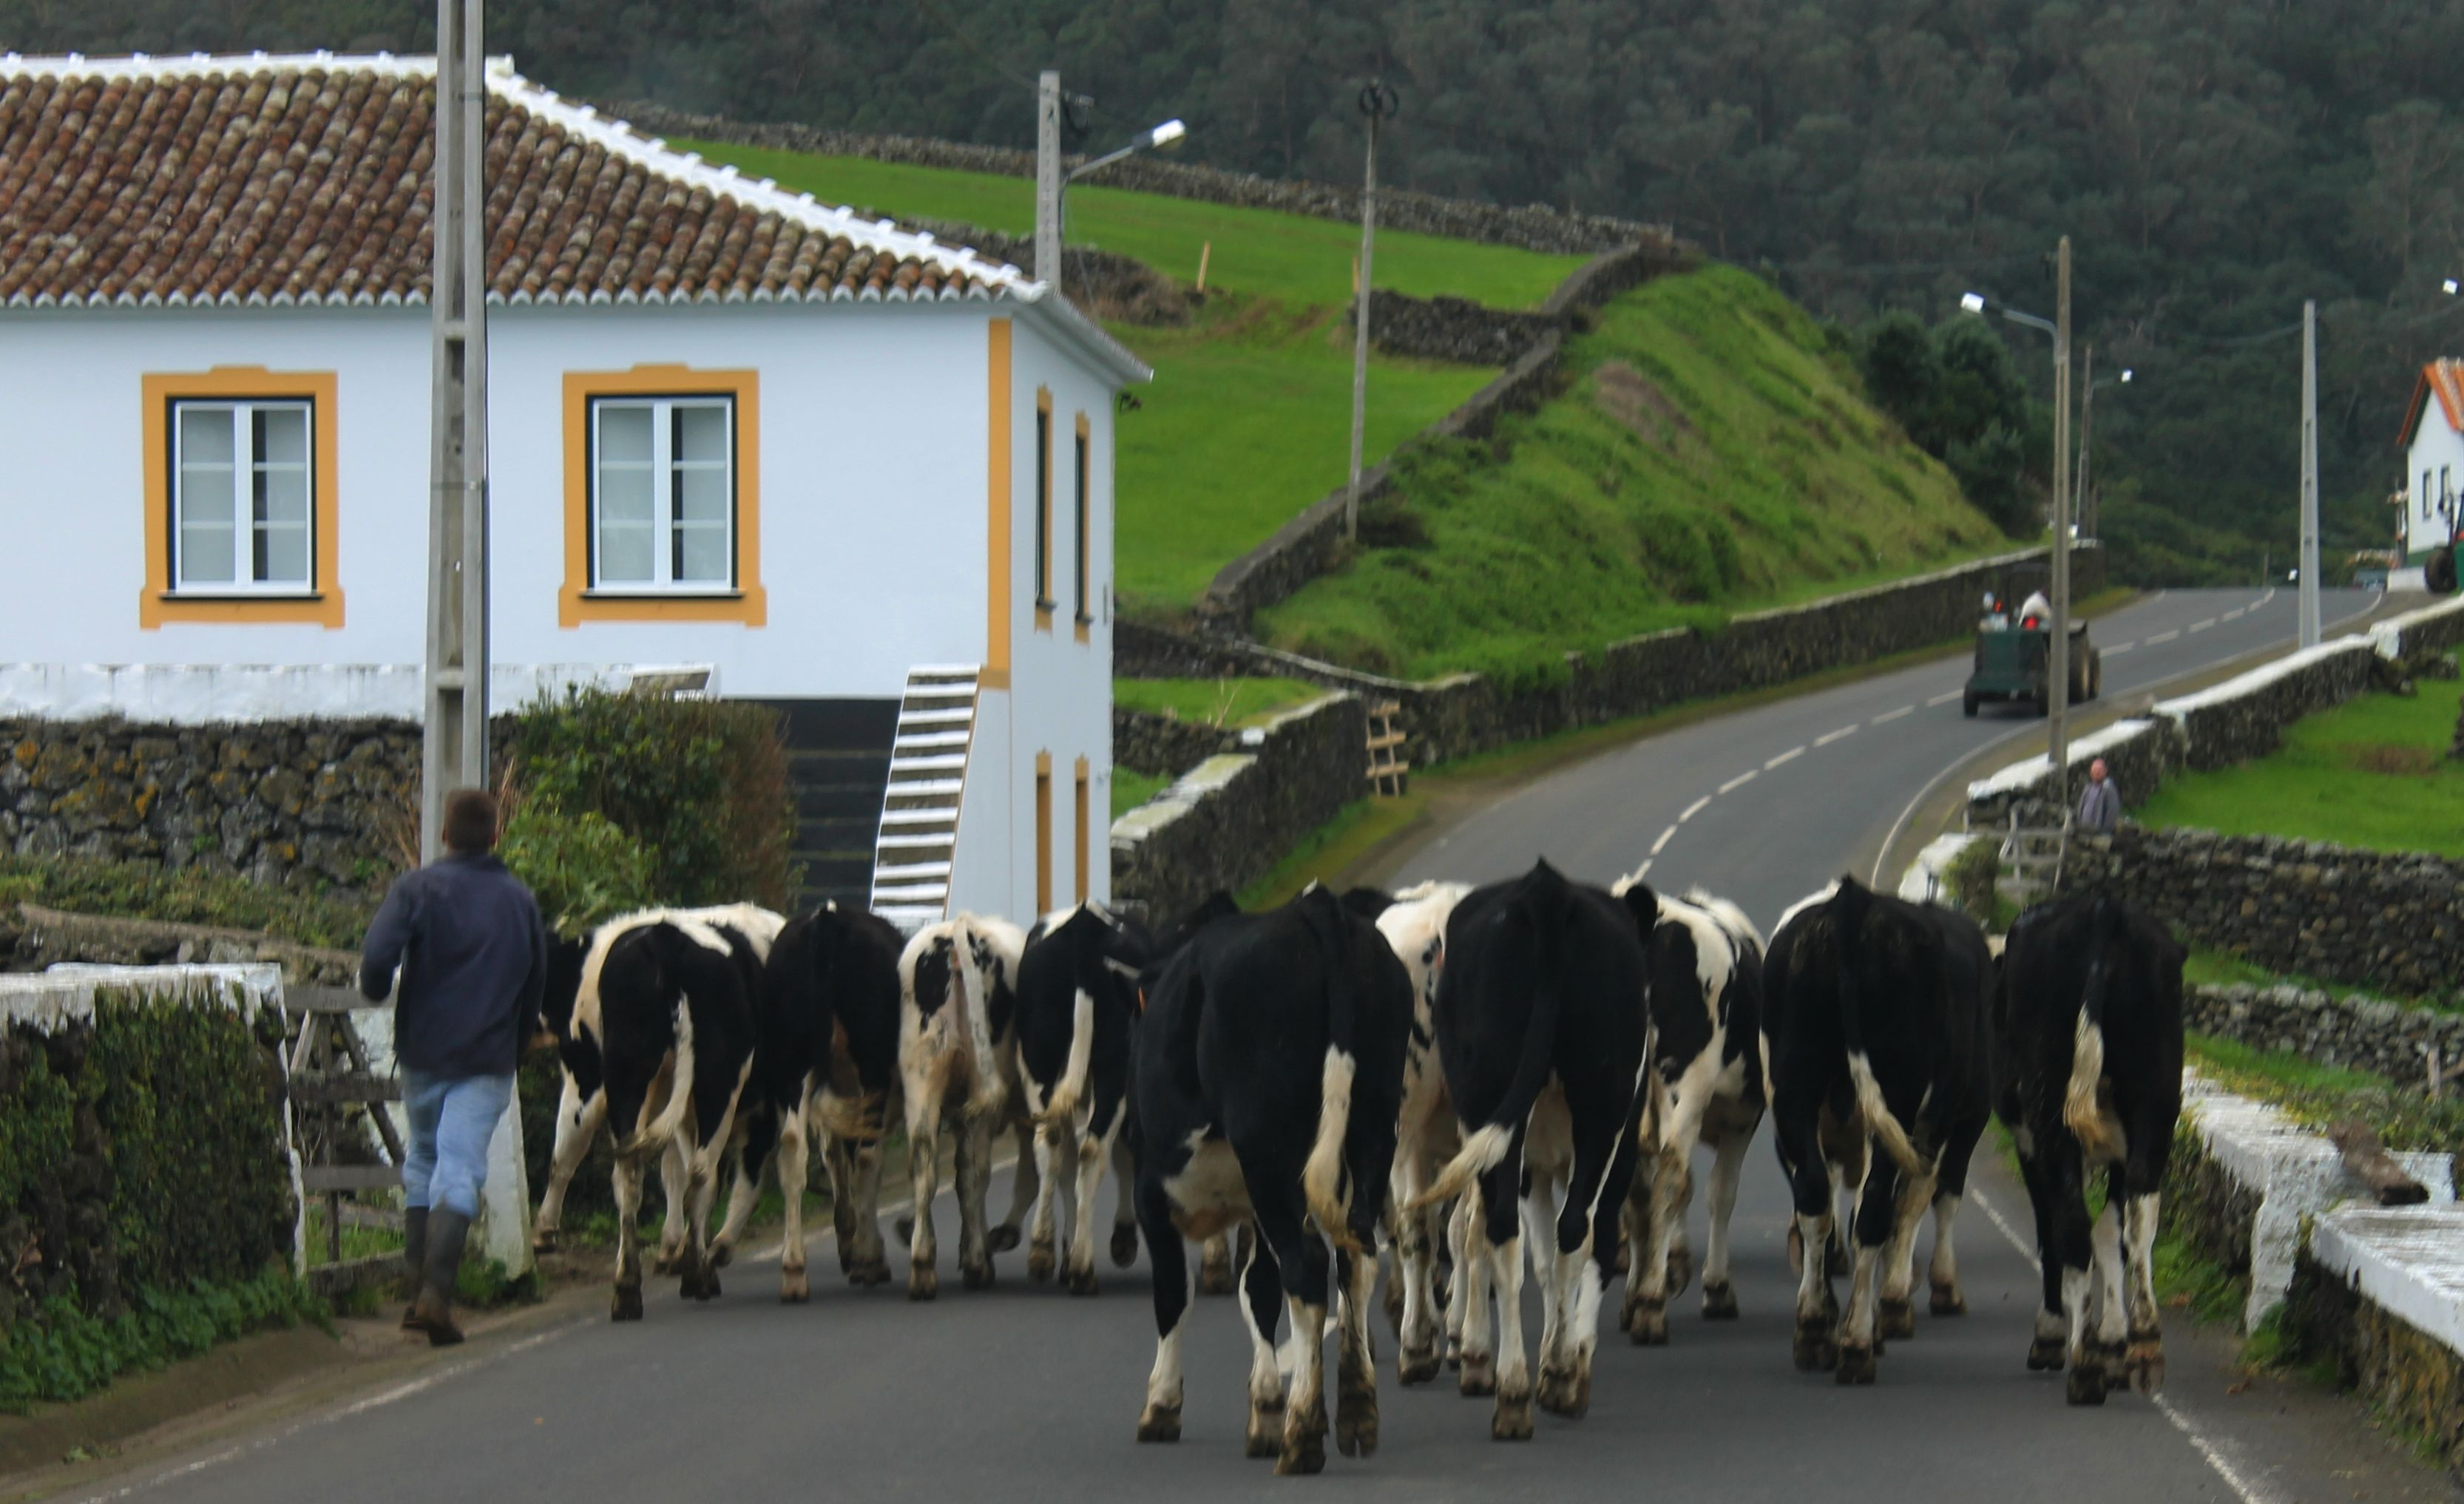 12. Cows a Walking